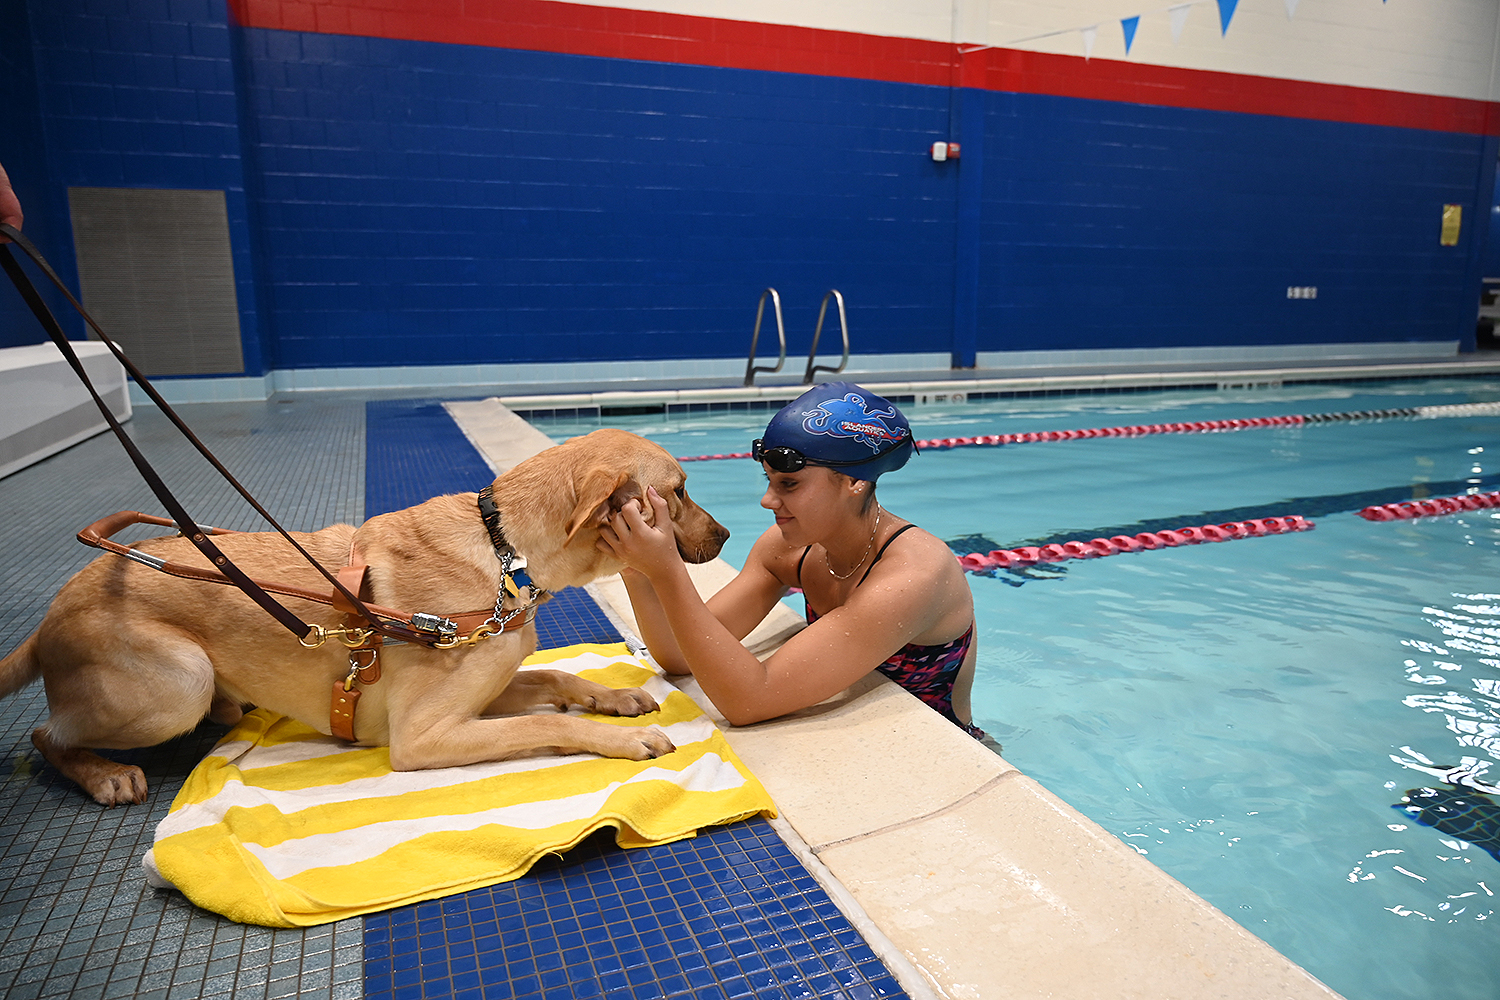 guide dog paired with blind Paralympian